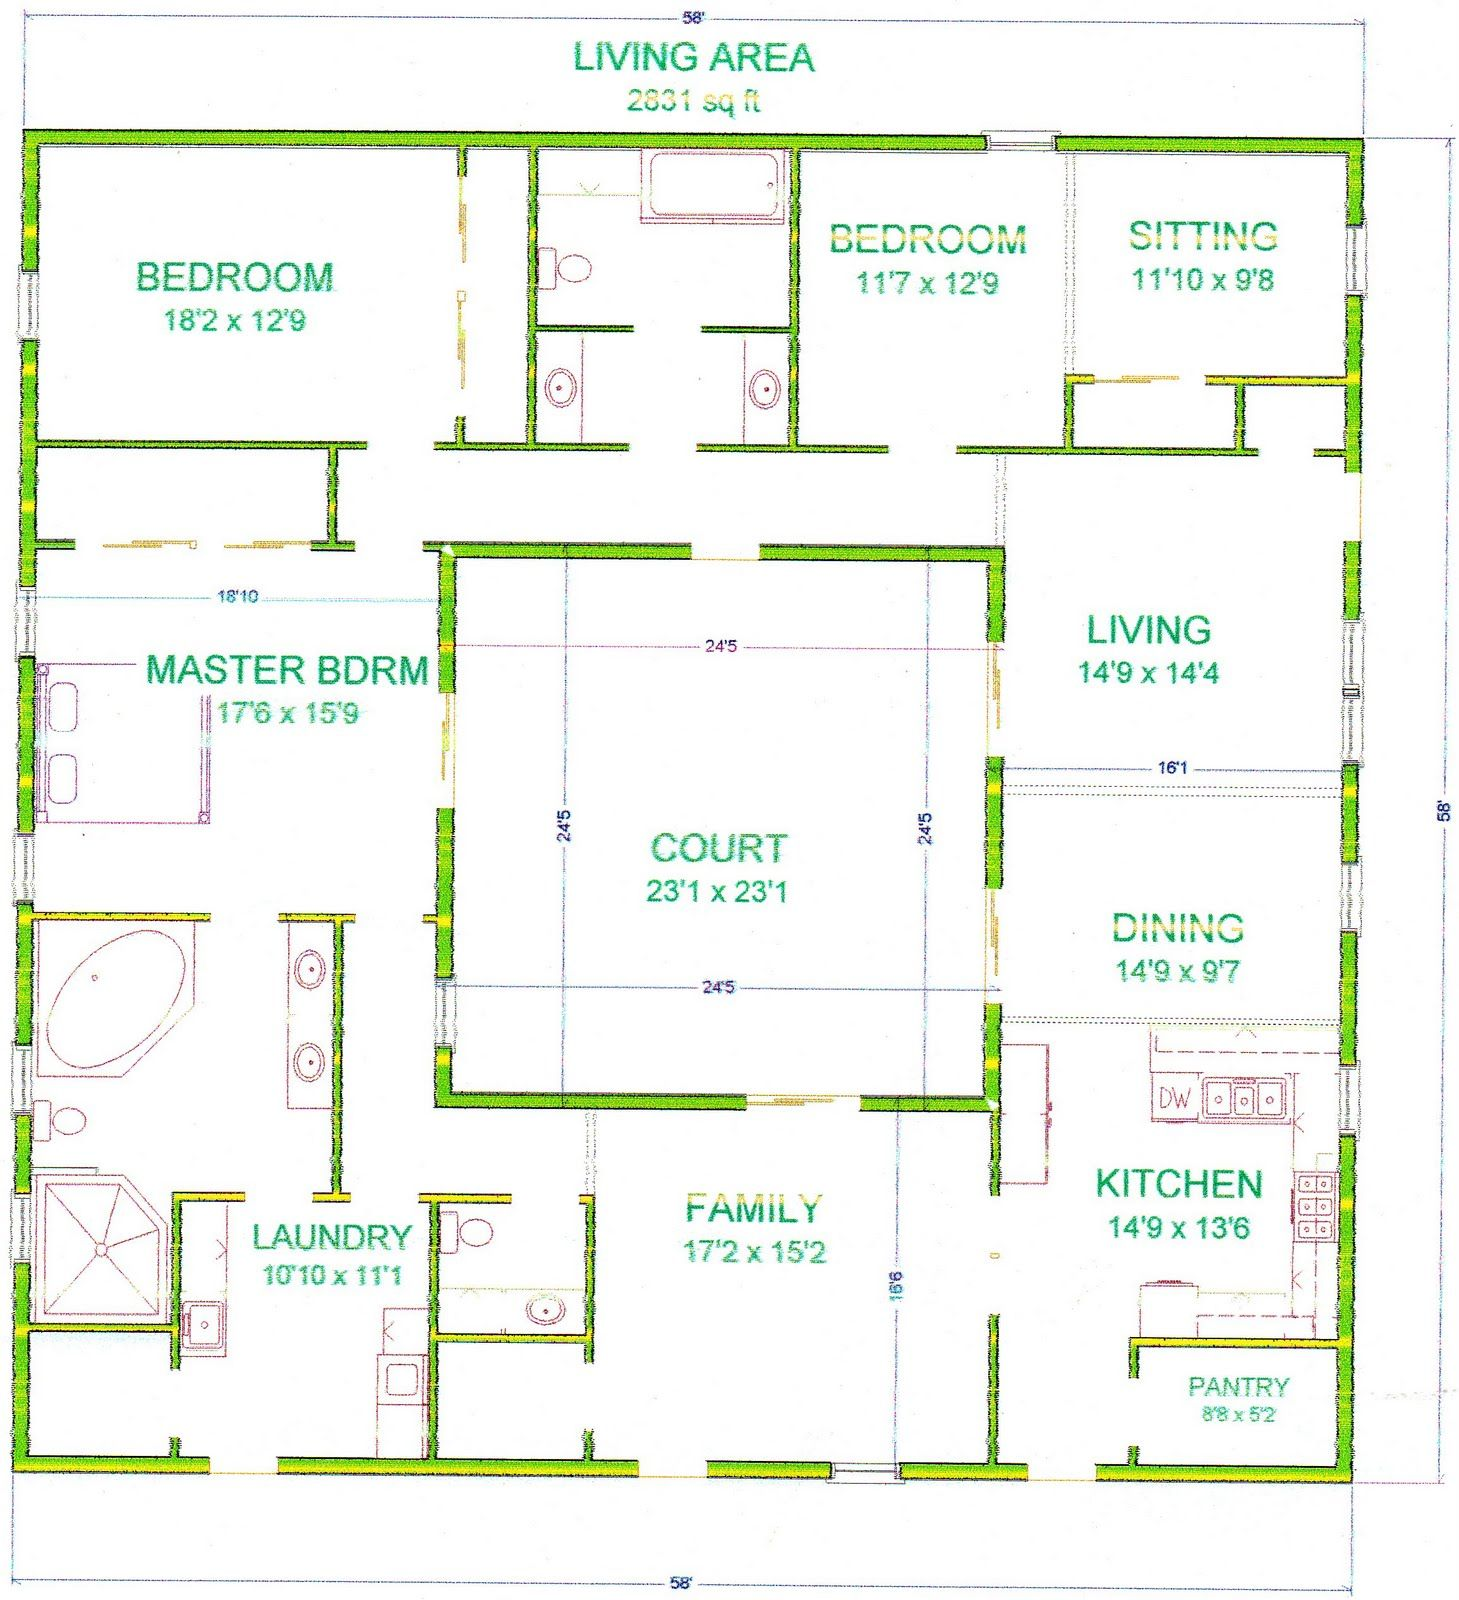 Center courtyard house plans with 2831 square feet this for Make my house